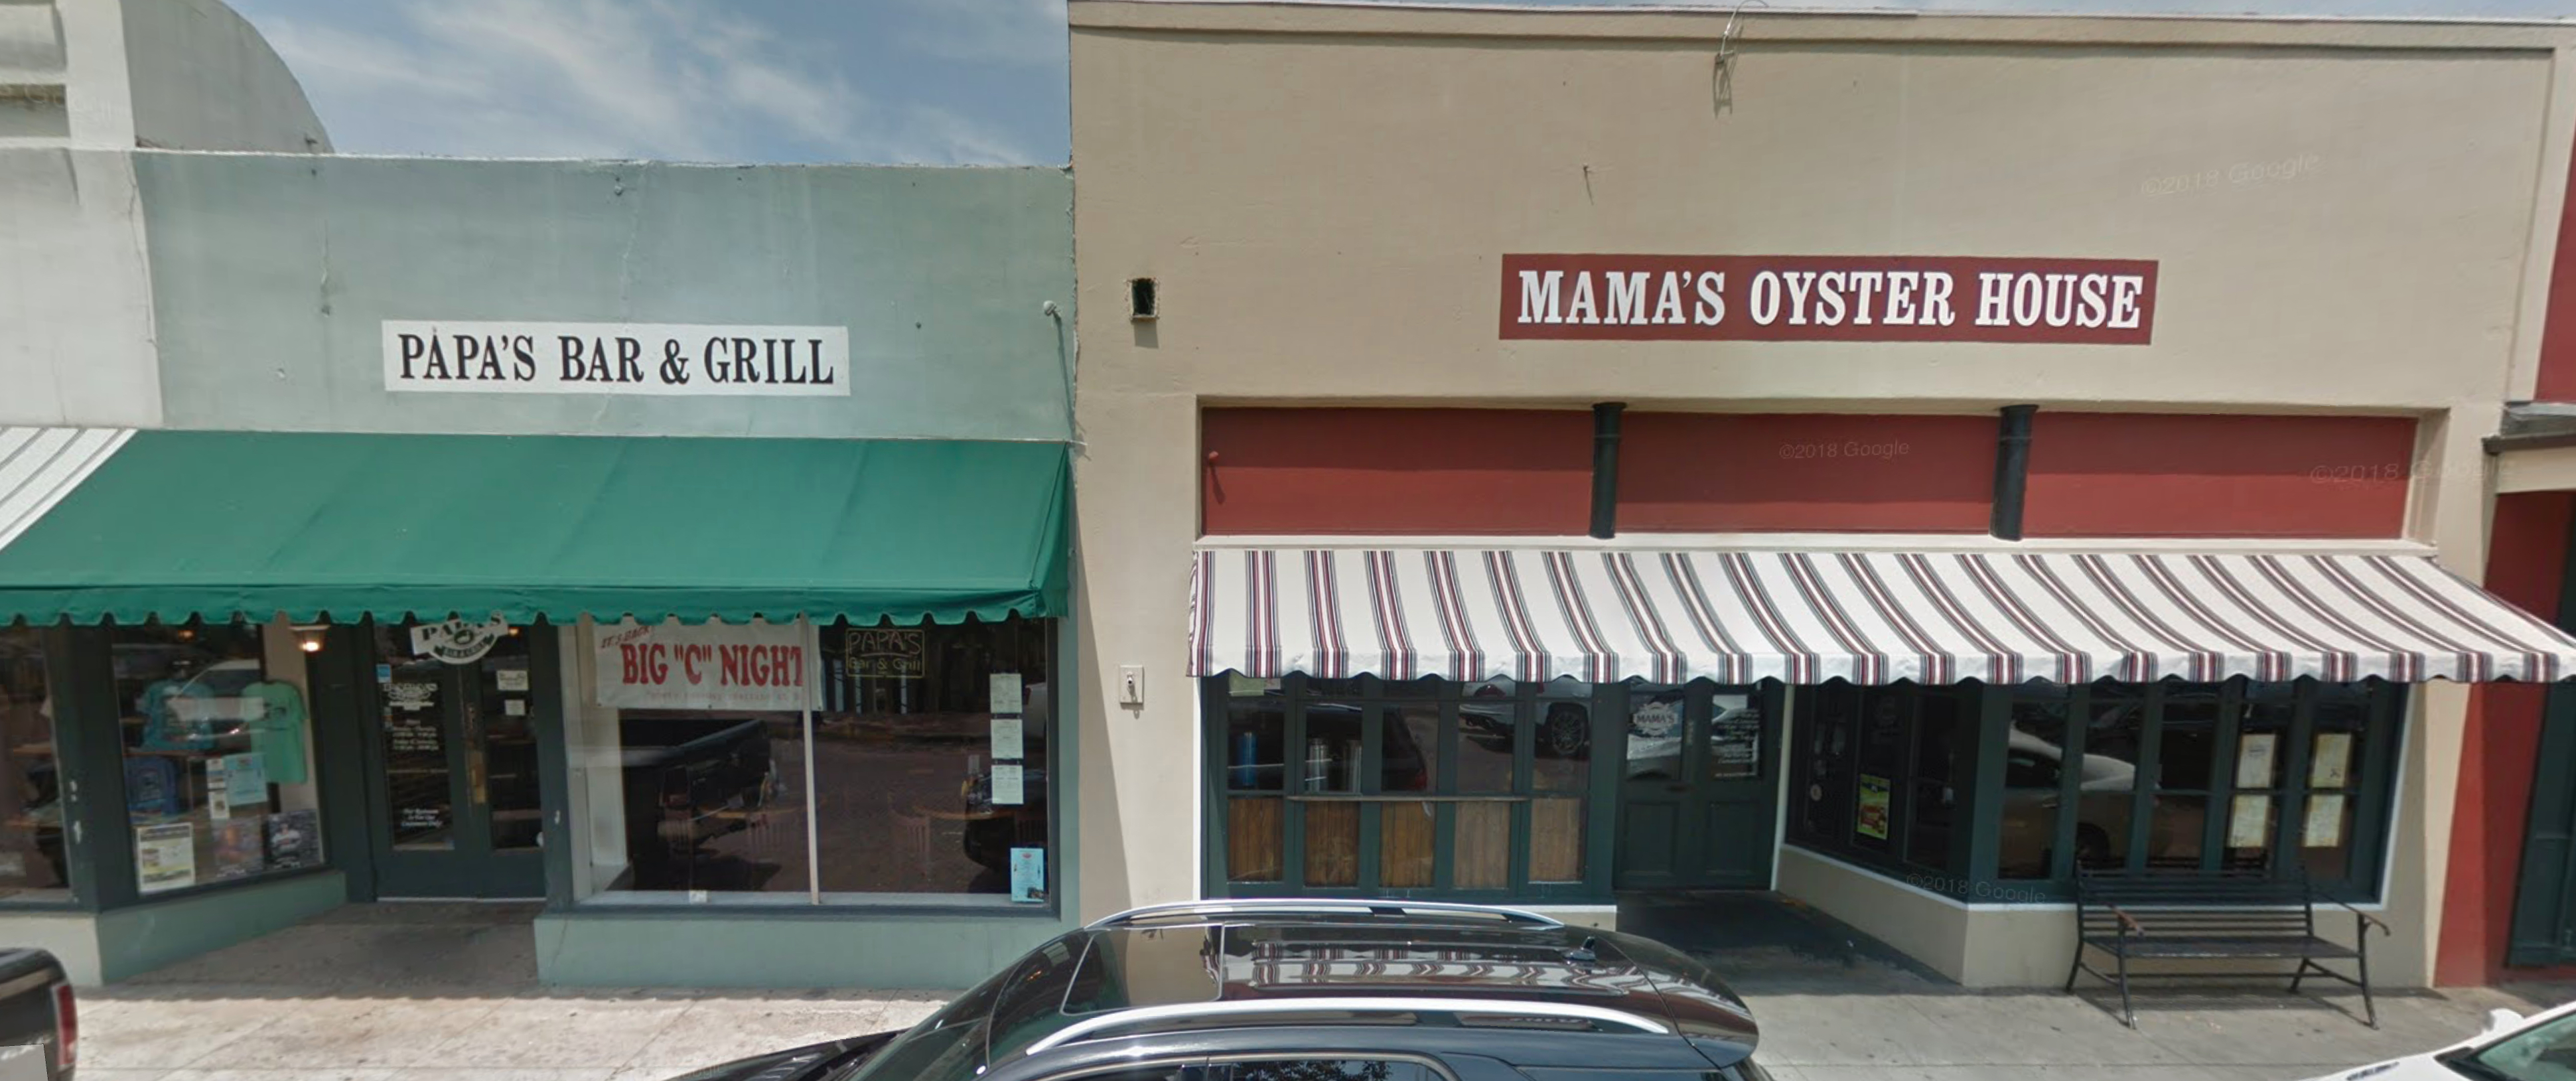 Papa's and Mama's on Streetview